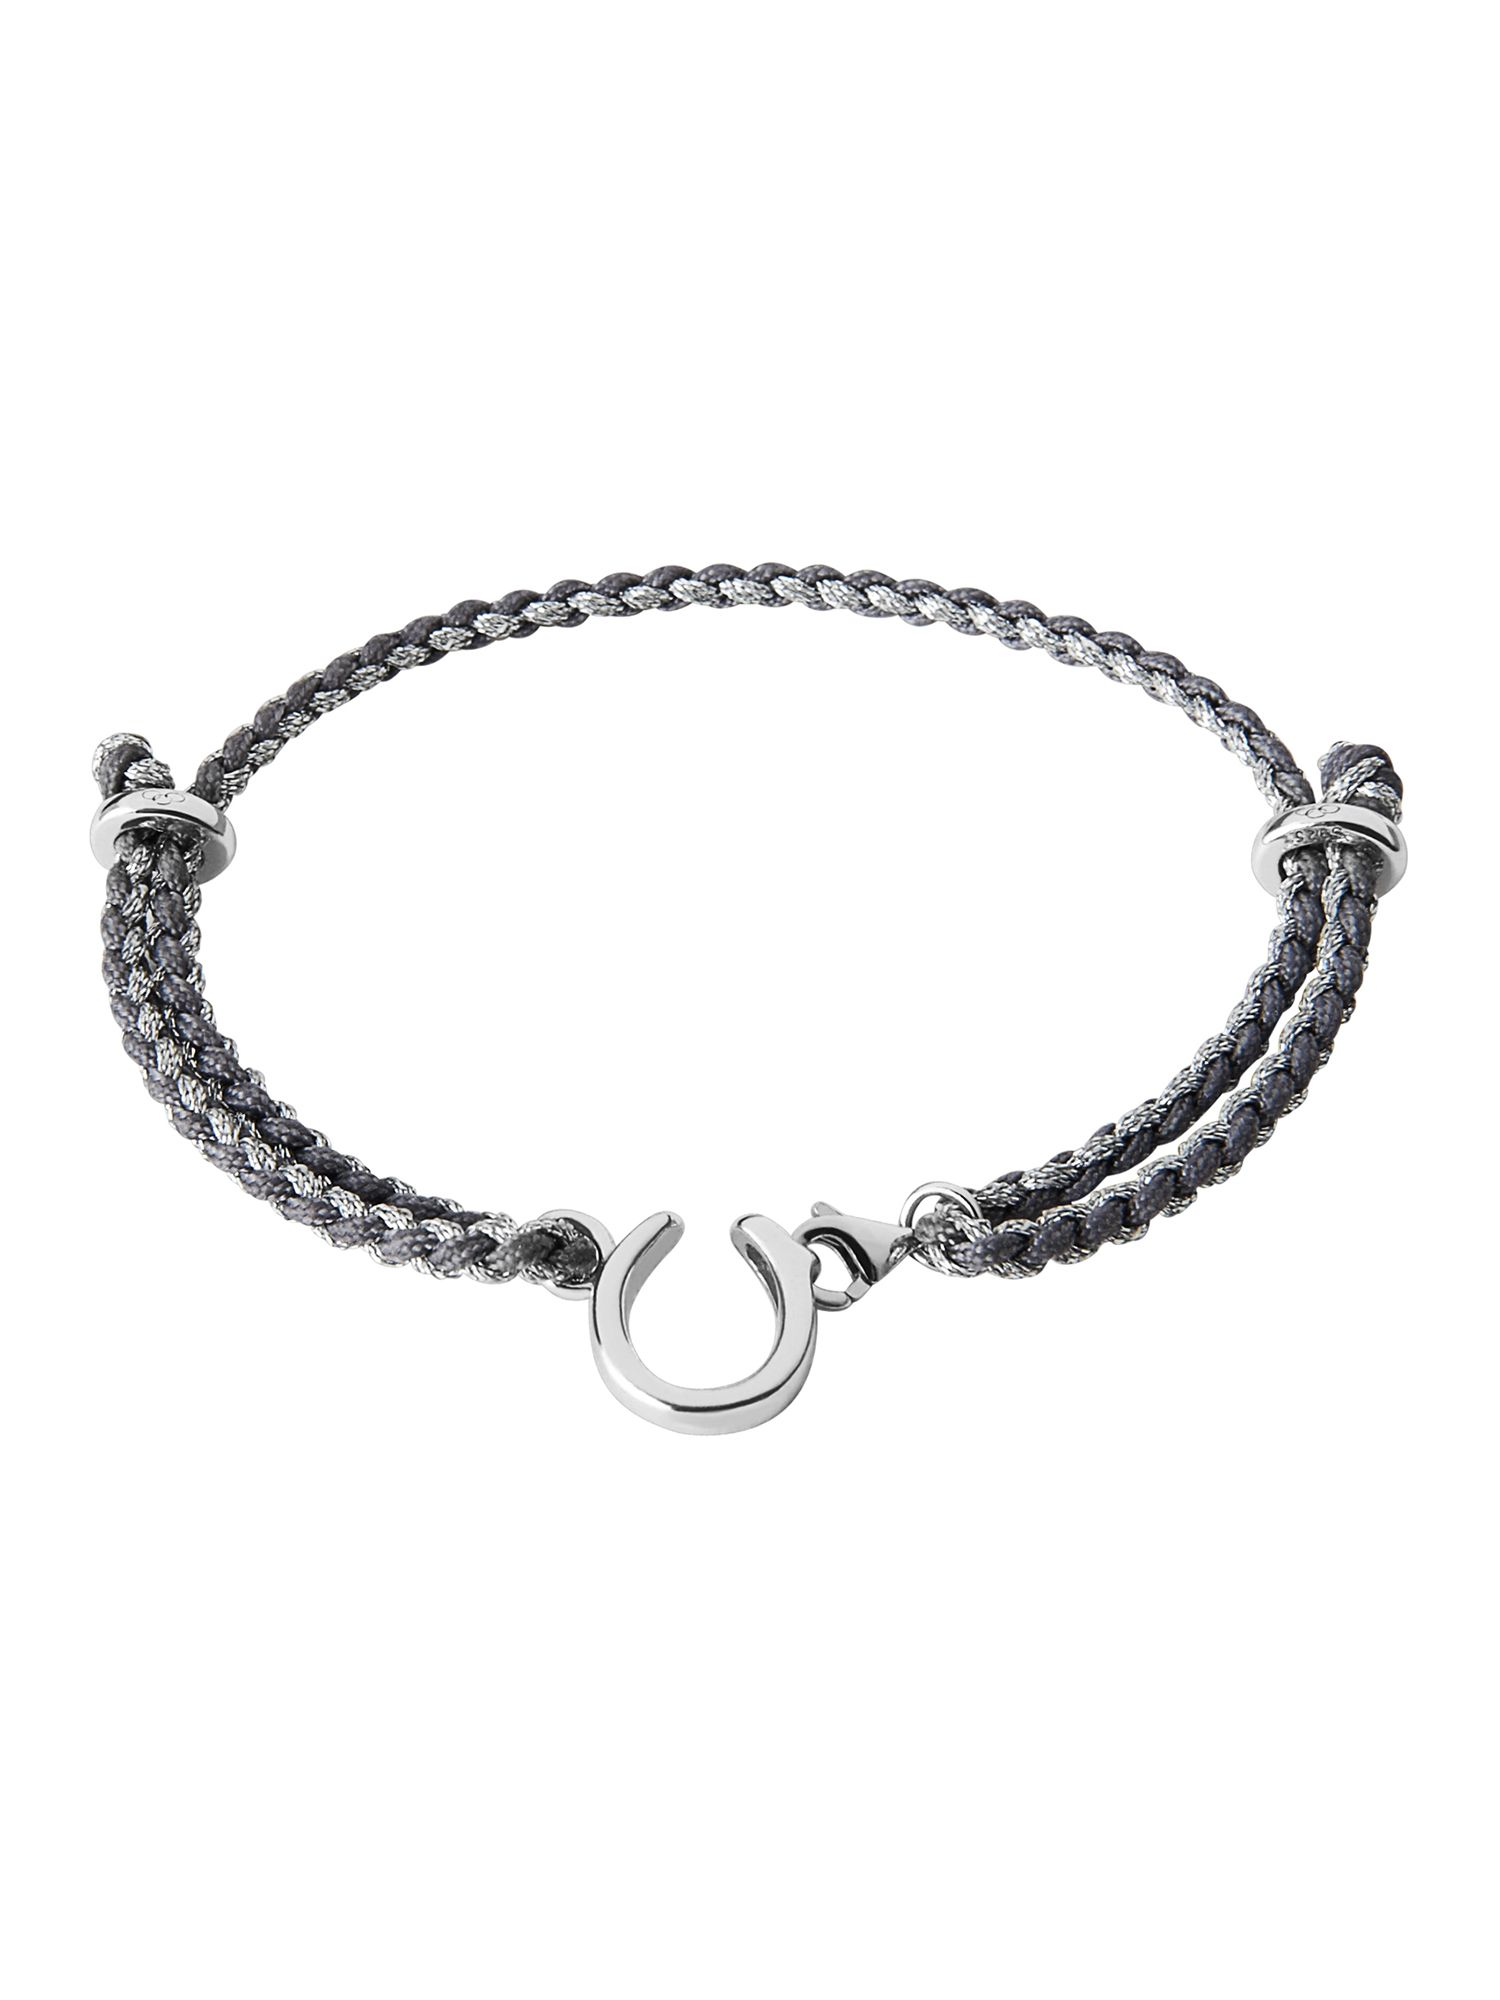 Charm catcher horseshoe bracelet silver & grey